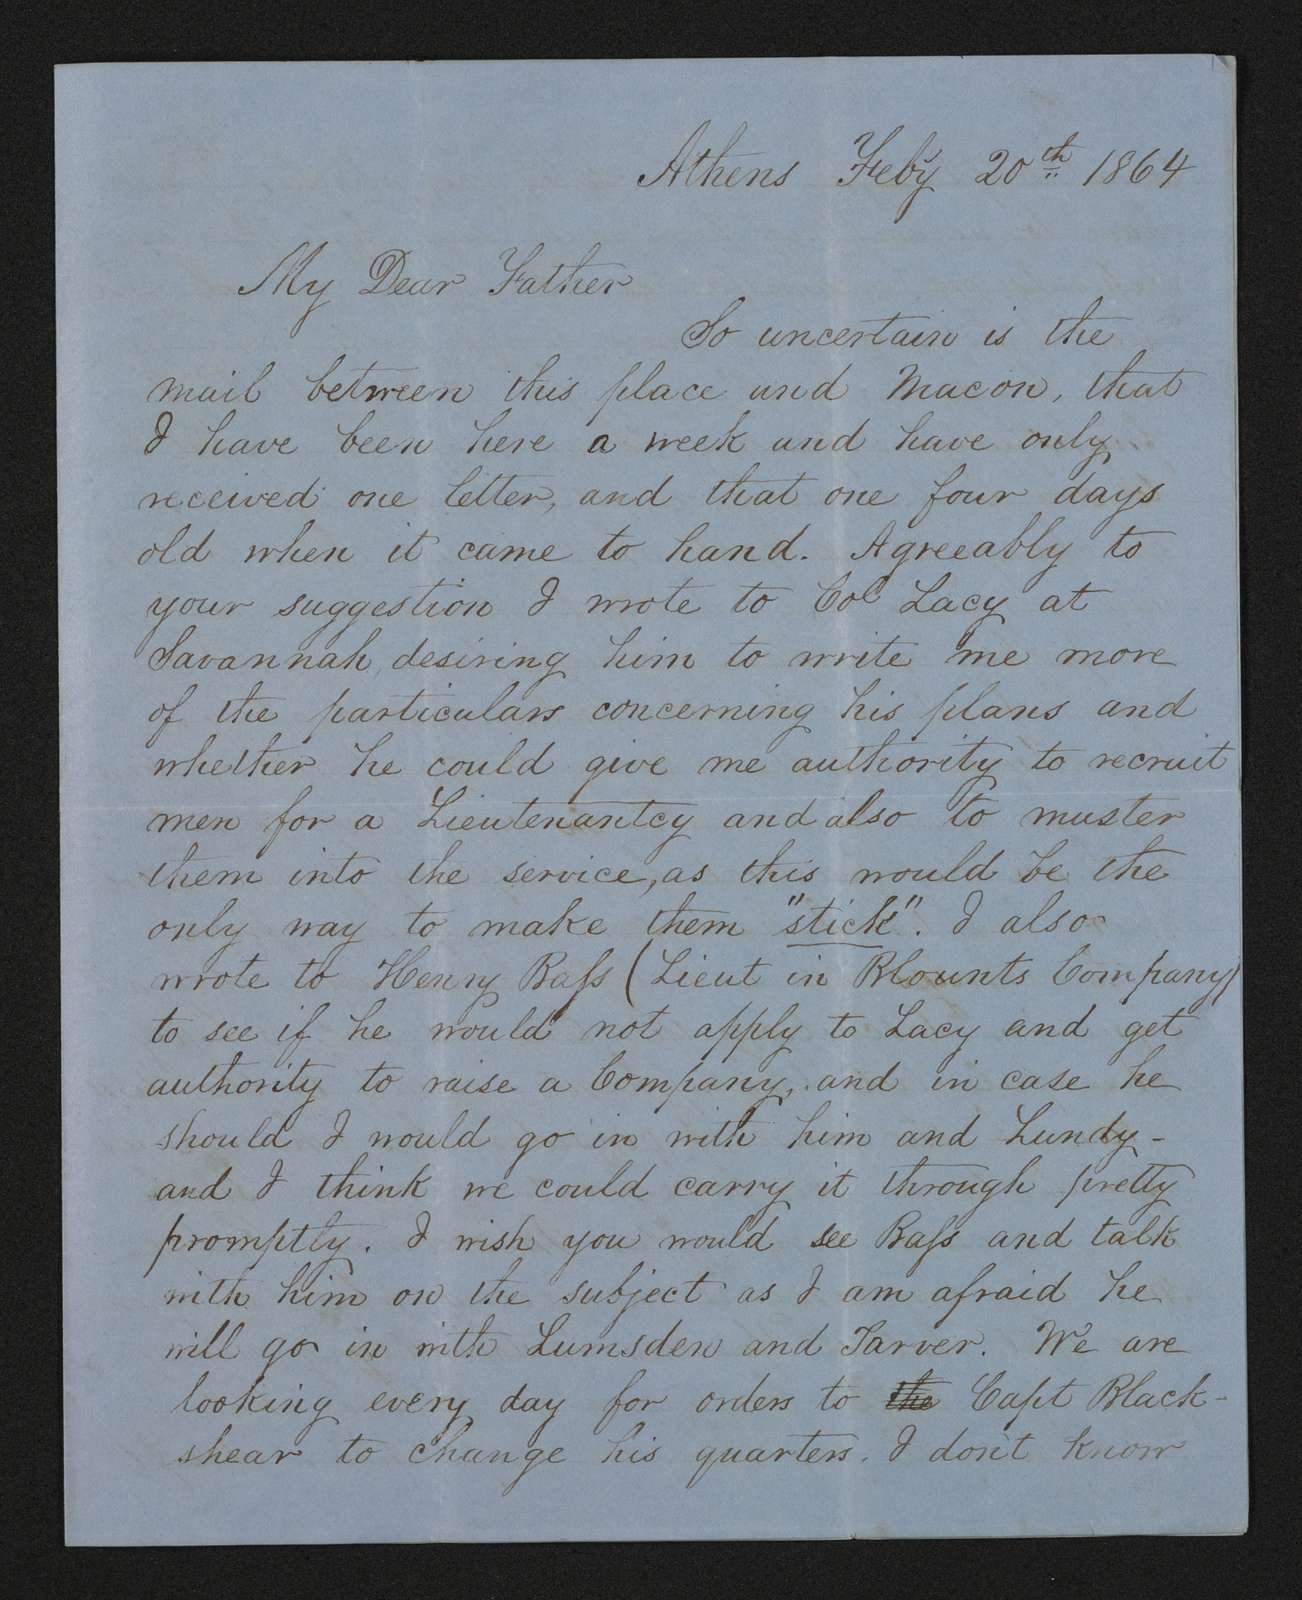 Lewis H. Machen Family Papers: Gresham Family Correspondence, 1834-1925; 1864-1865